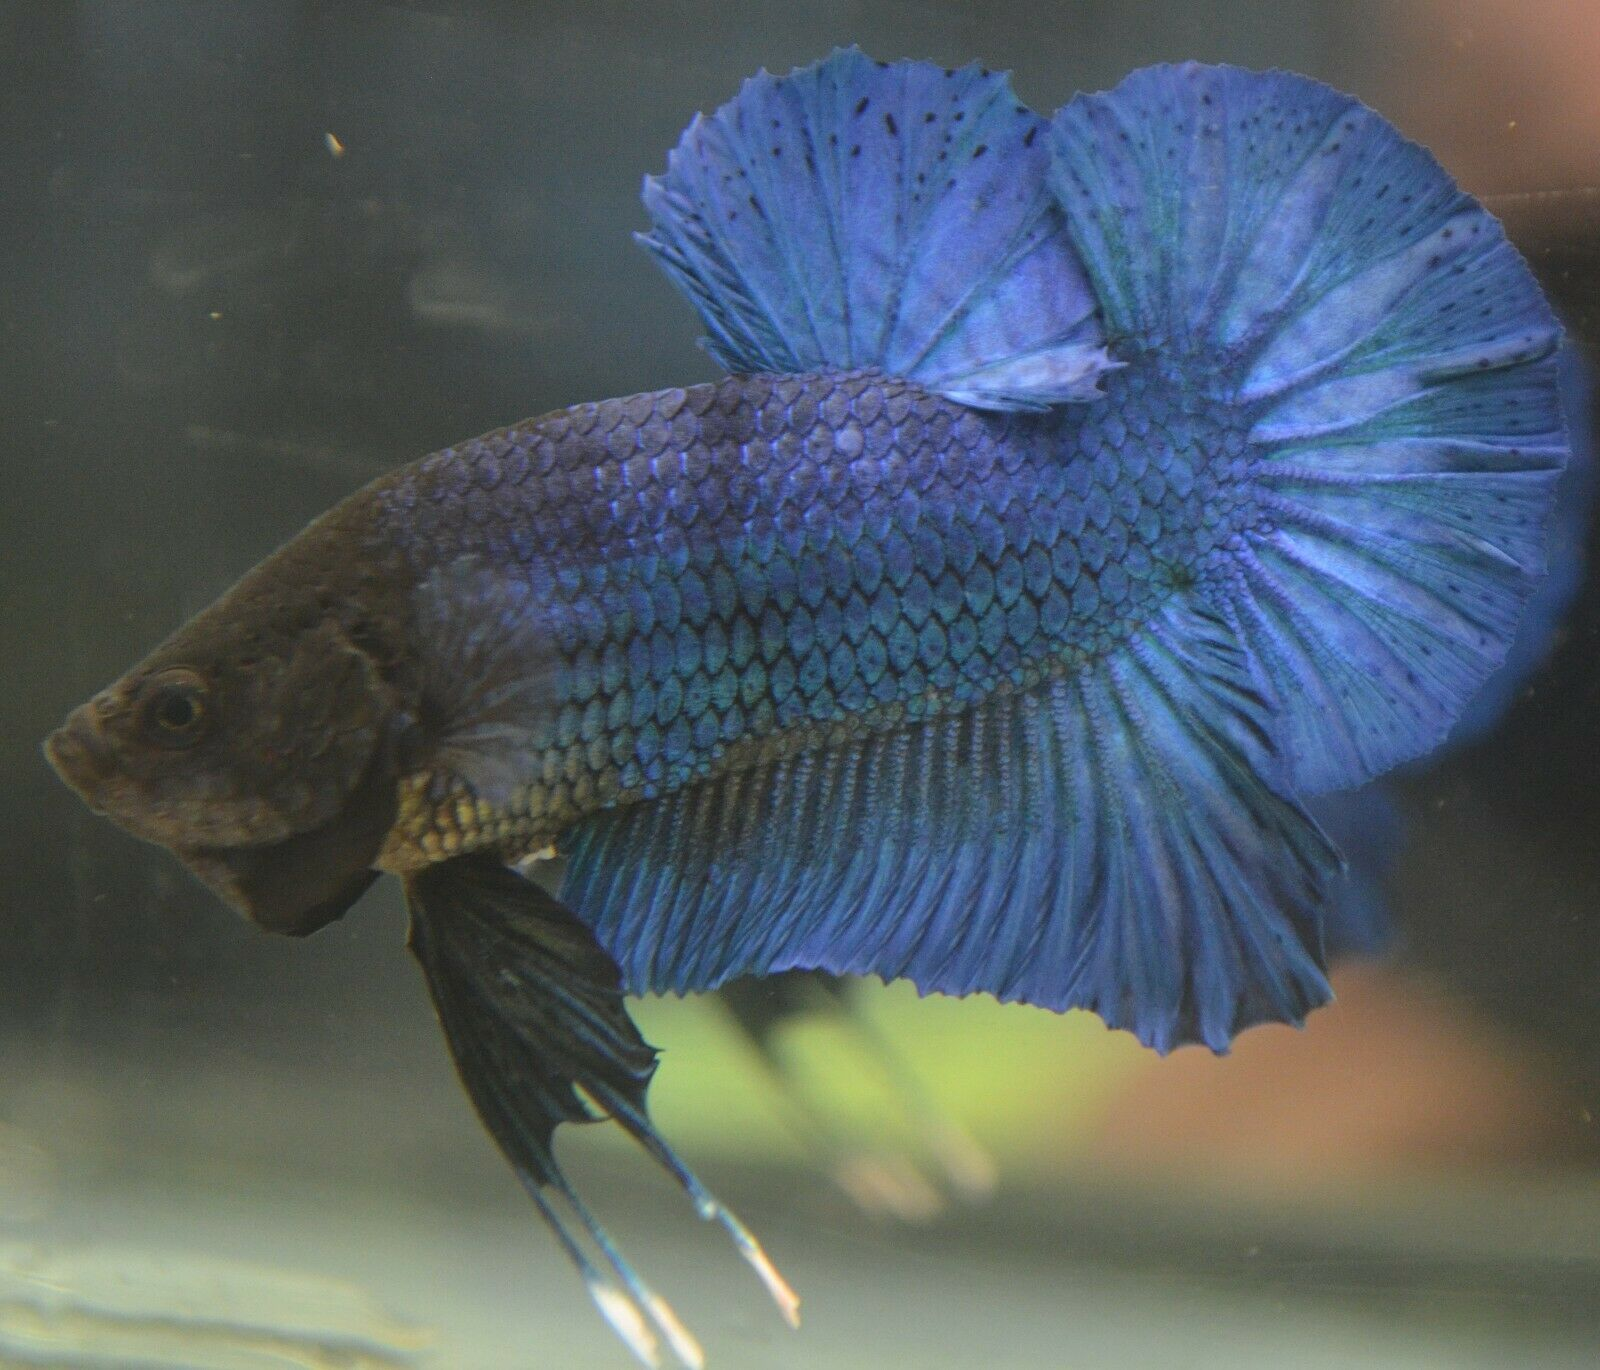 Live Betta Fish Imported Male Turquoise Halfmoon Plakat Male Betta Fish Ideas Of Betta Fish Bettafish Live Betta Fish Betta Fish For Sale Betta Fish